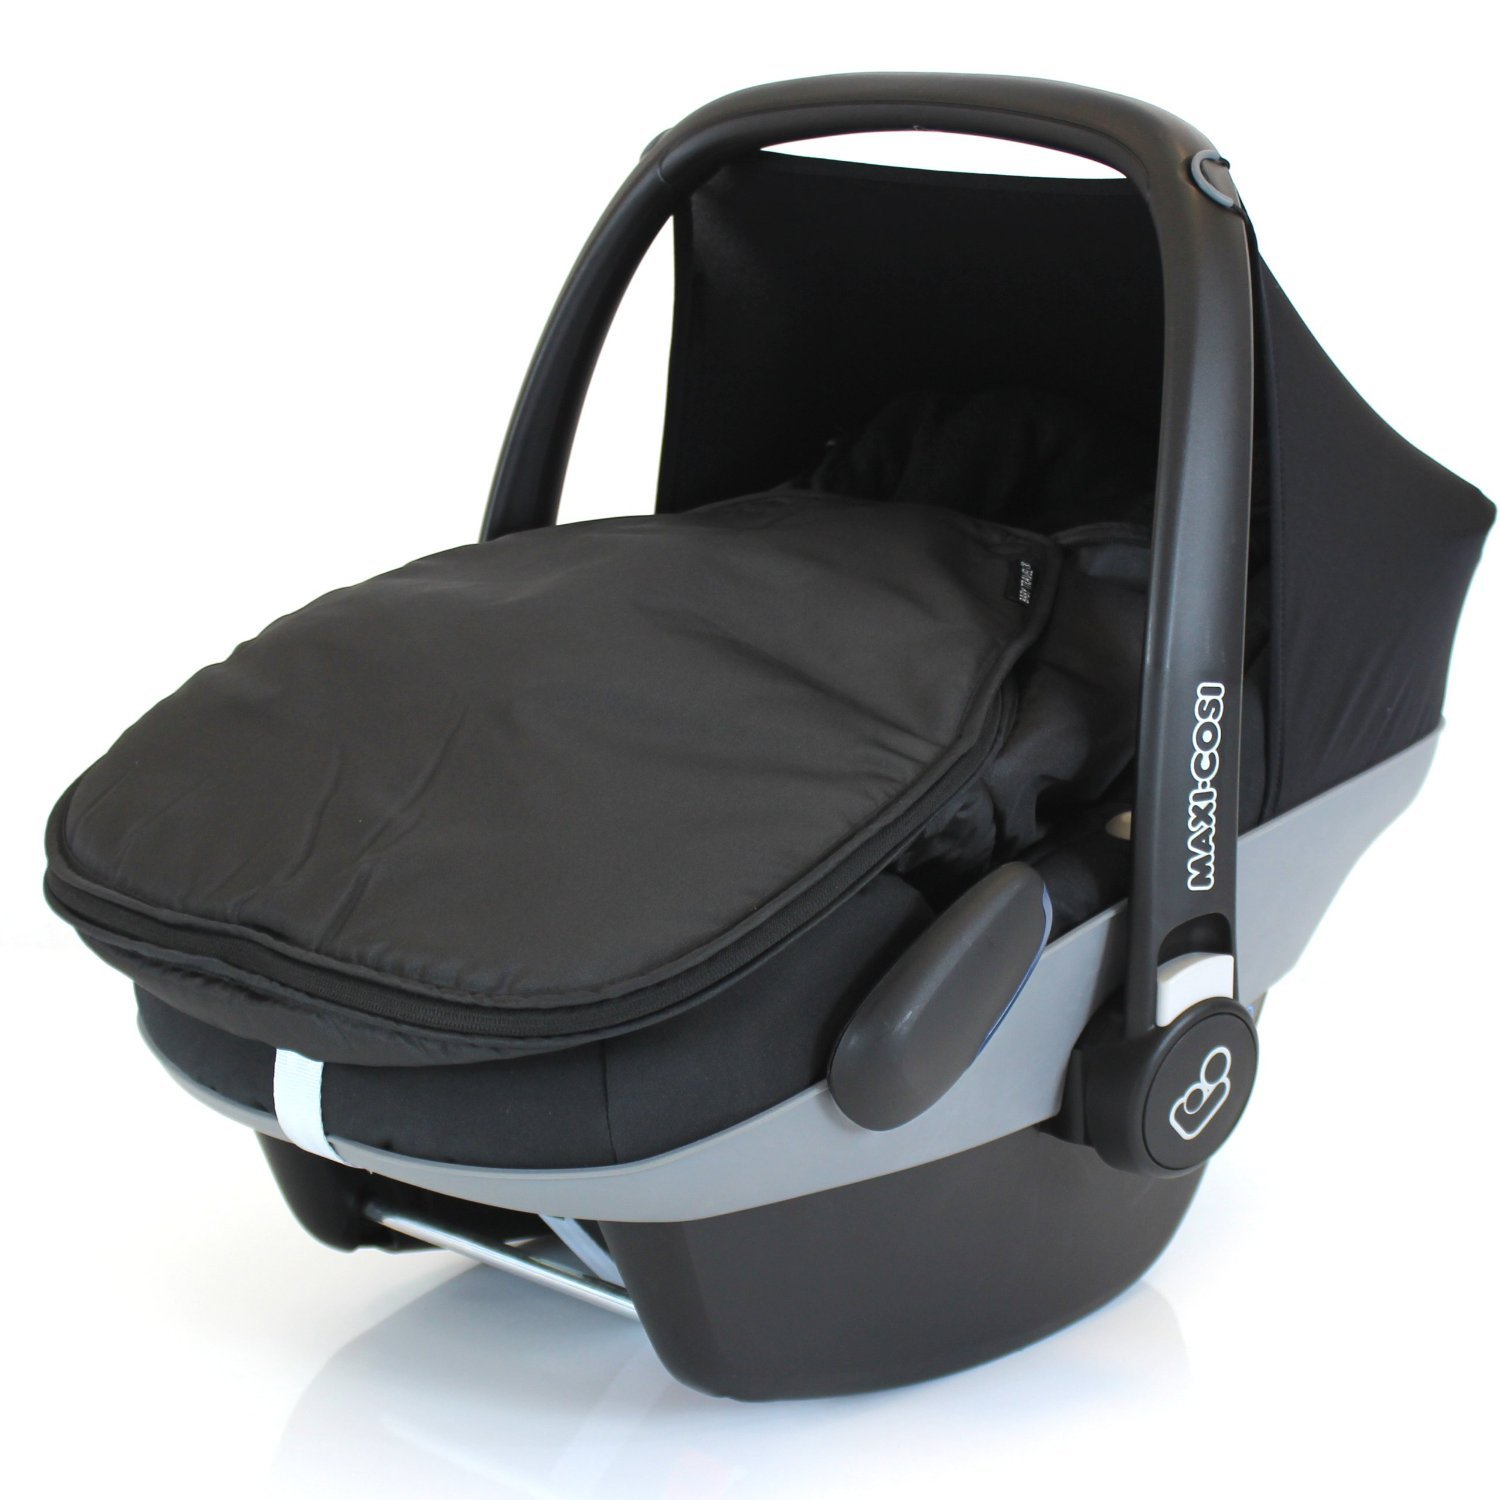 Carseat Footmuff To Fit Maxi Cosi Cabrio - Black Baby Travel